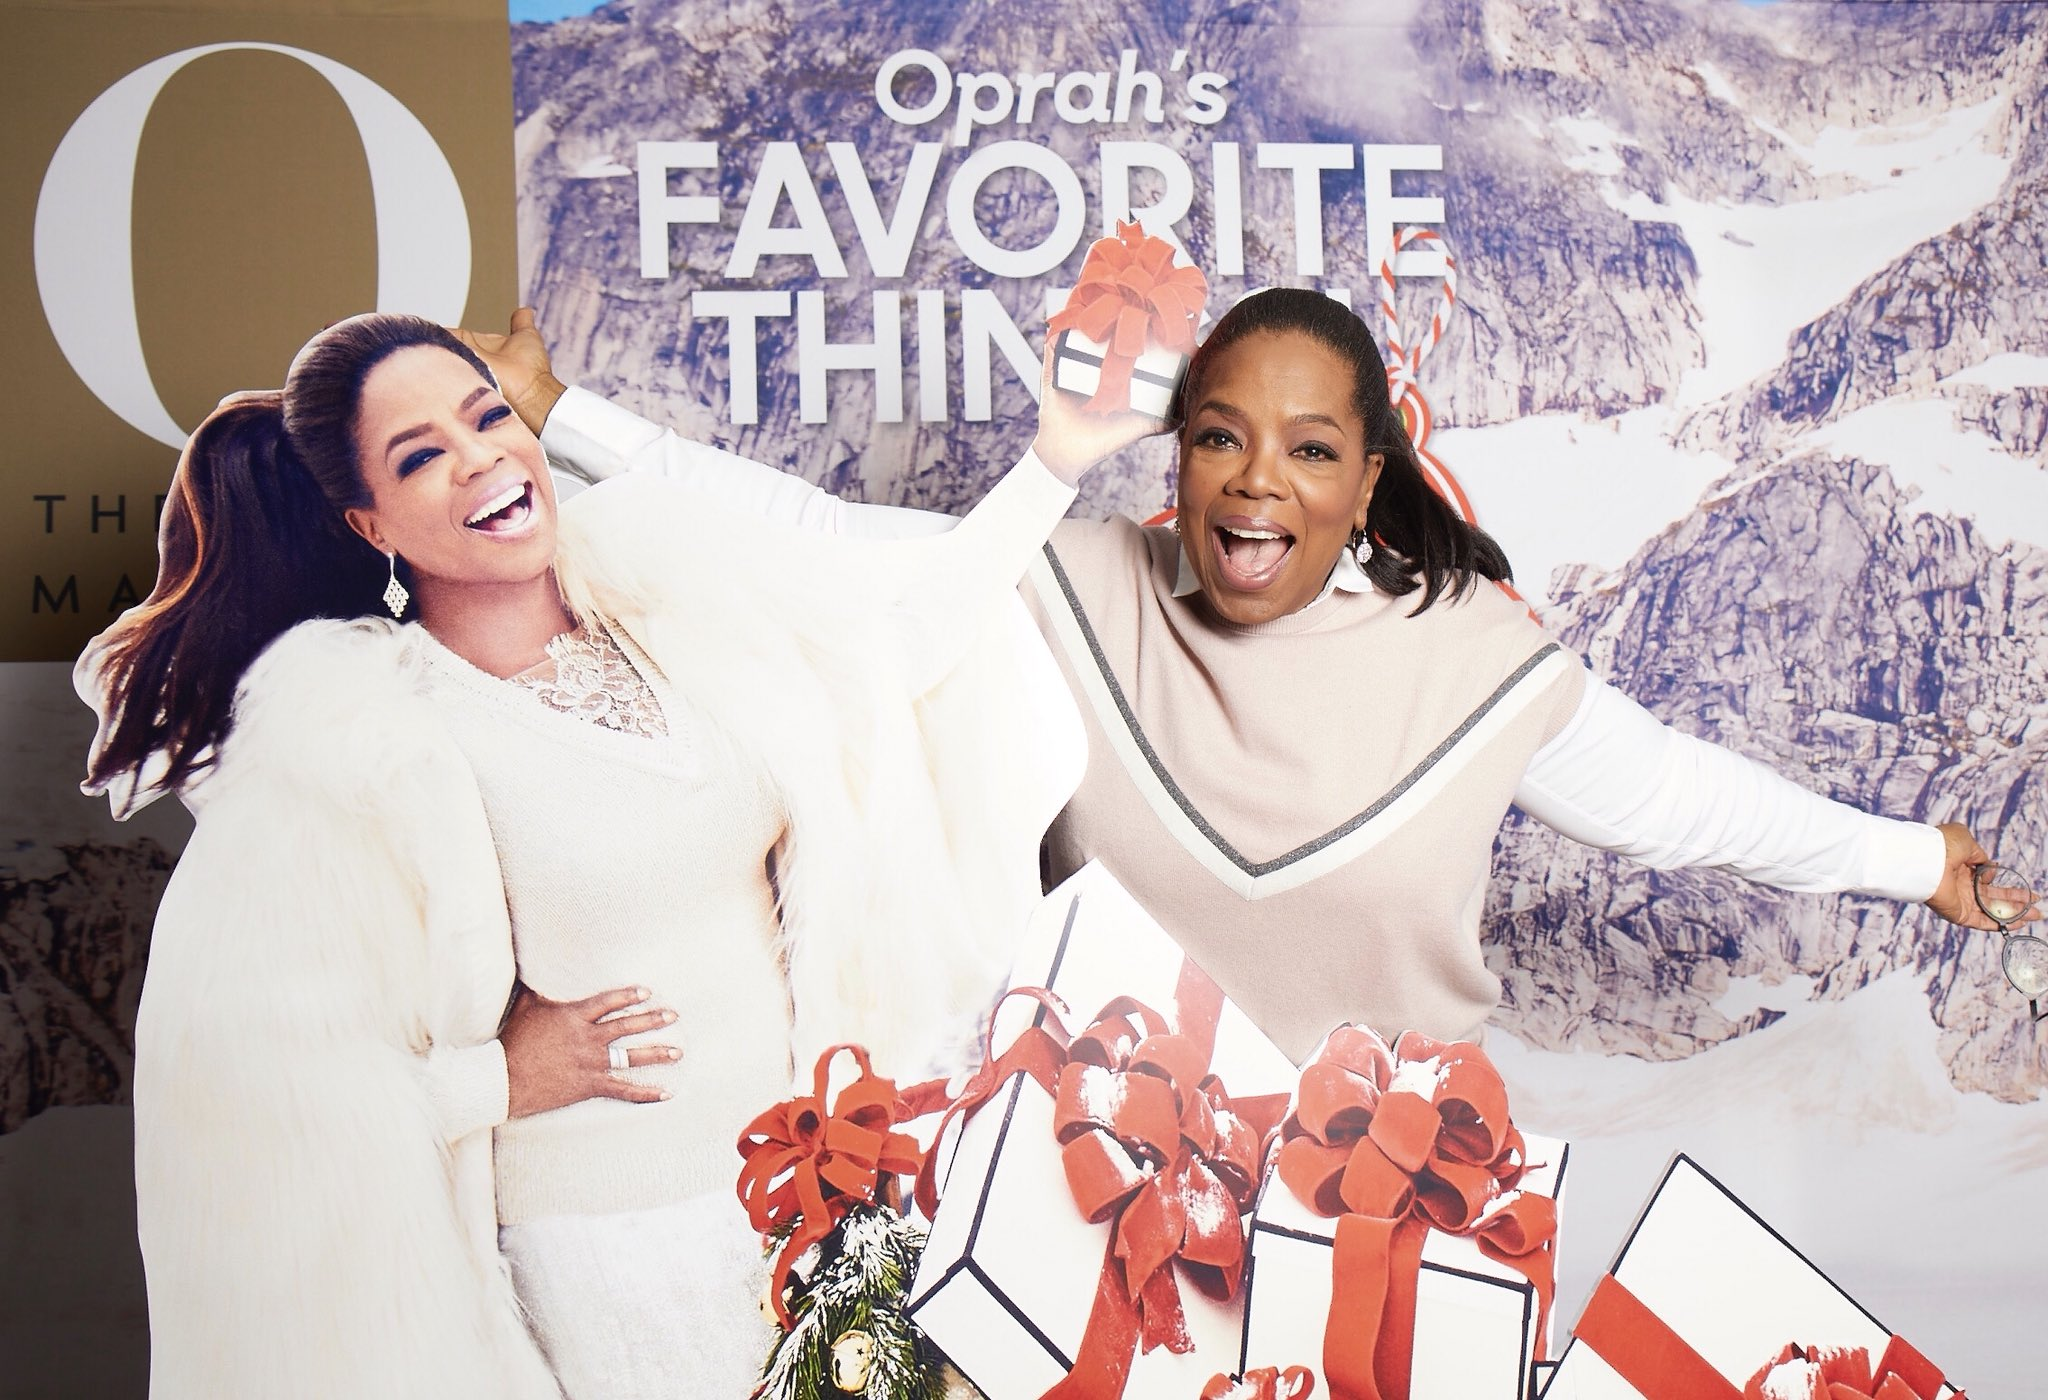 Seeing double?! FUN at the @O_Magazine Favorite Things Reveal party! ❄️ https://t.co/2zNKnHgz1l